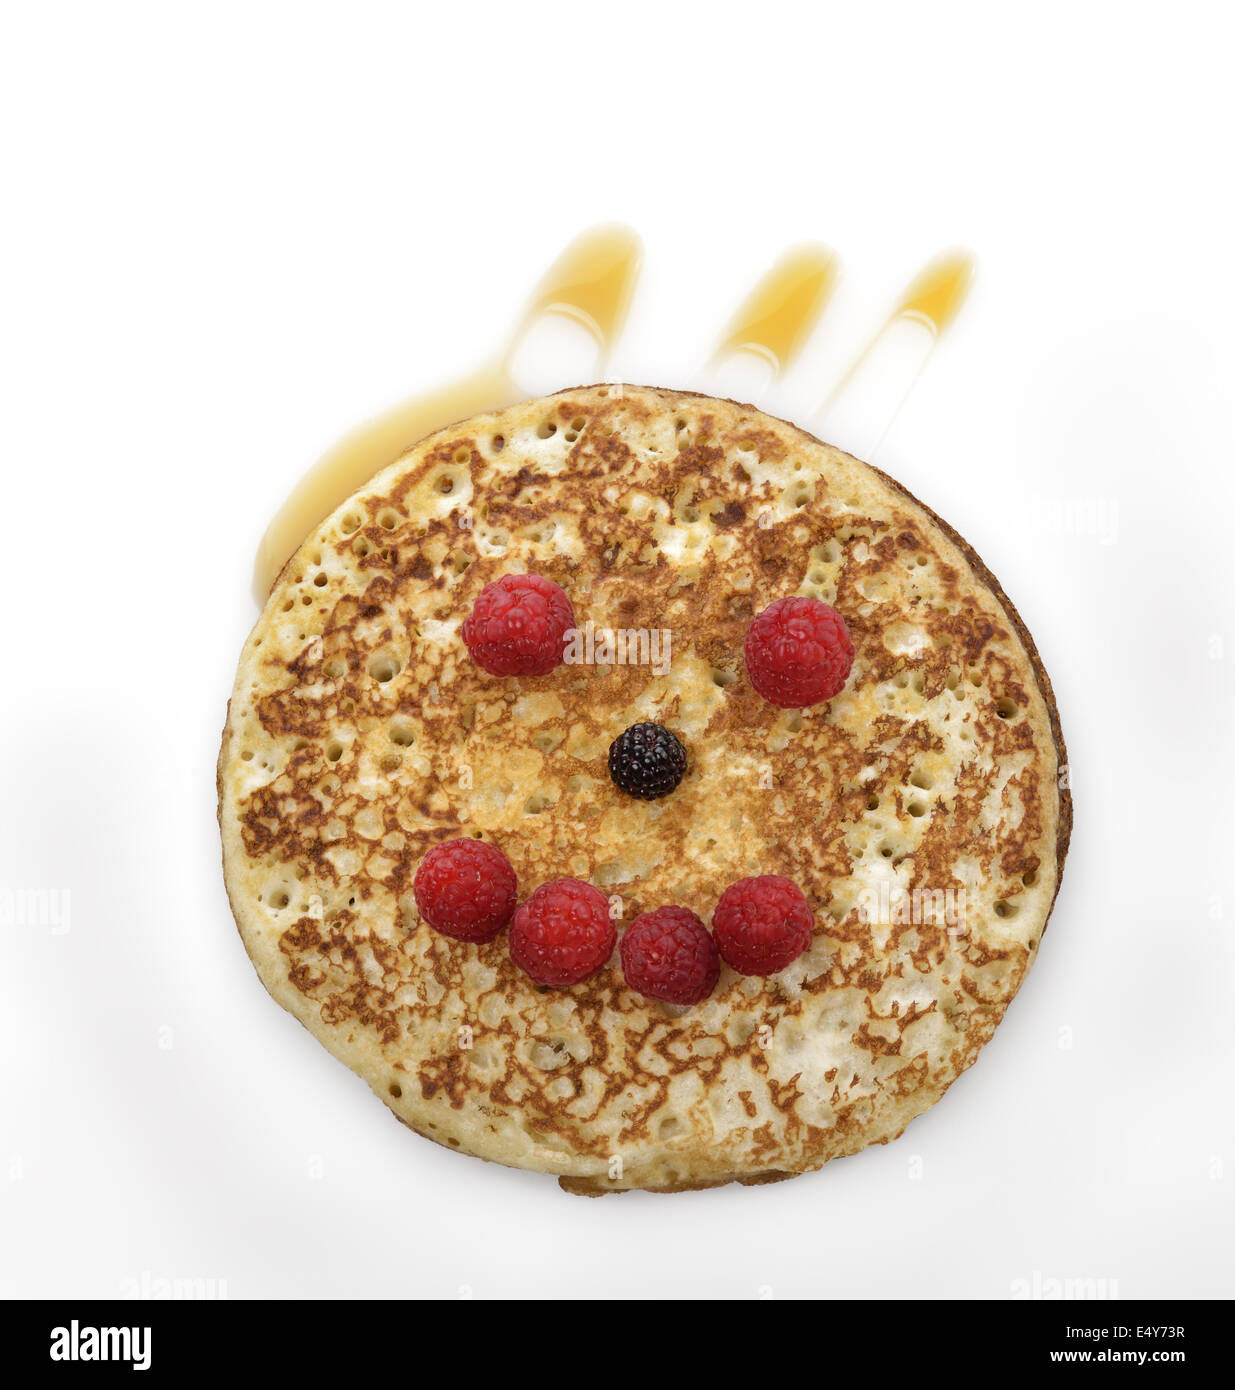 Pancake With Maple Syrup And Berries - Stock Image